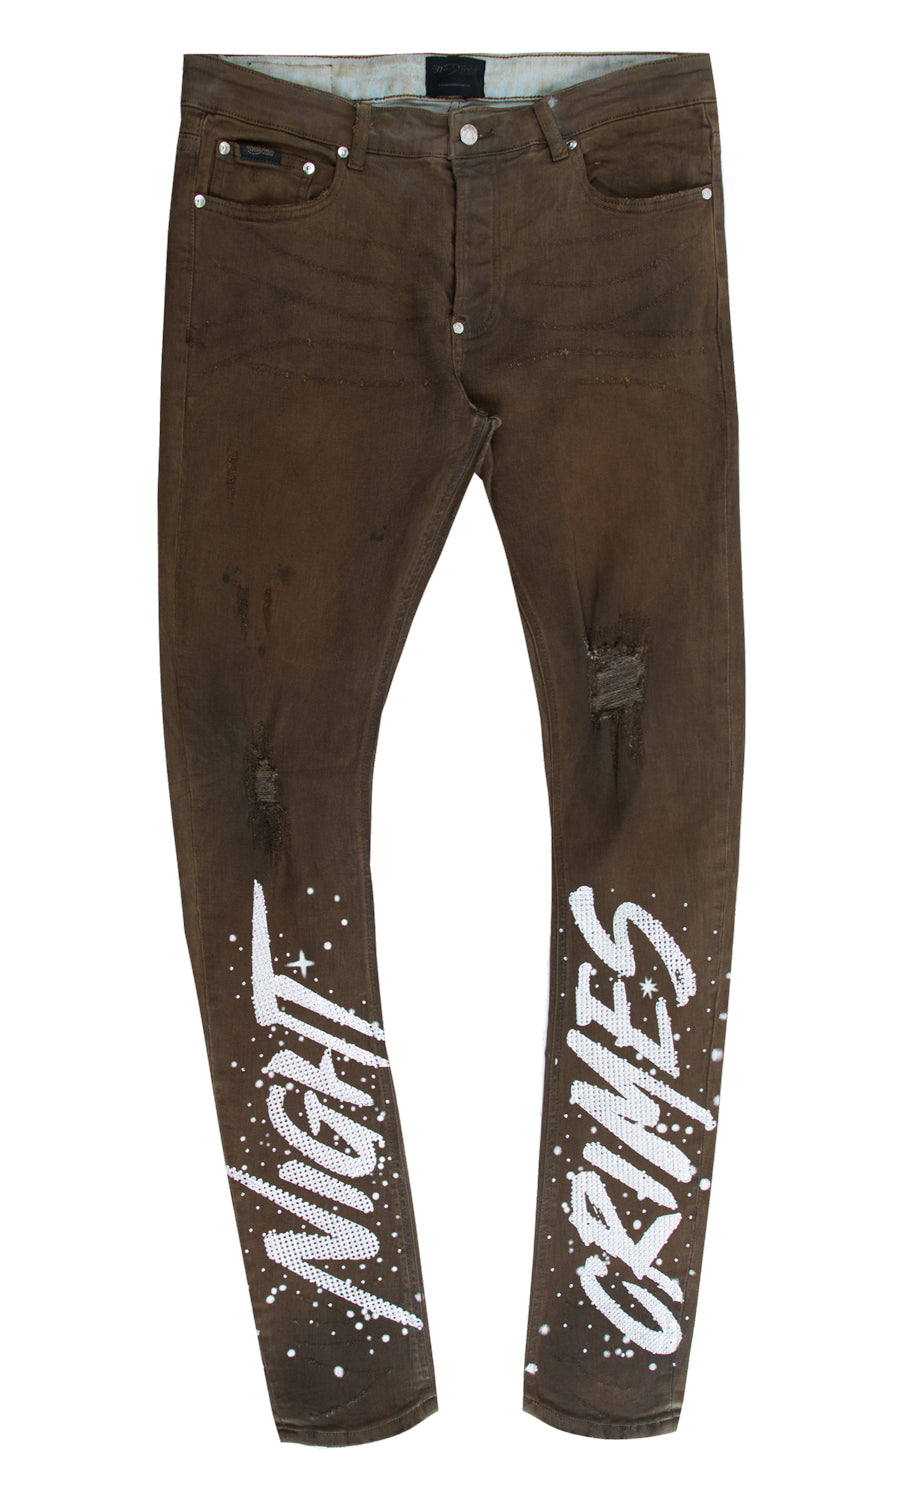 NIGHT CRIMES CRYSTAL DENIM PANT BROWN